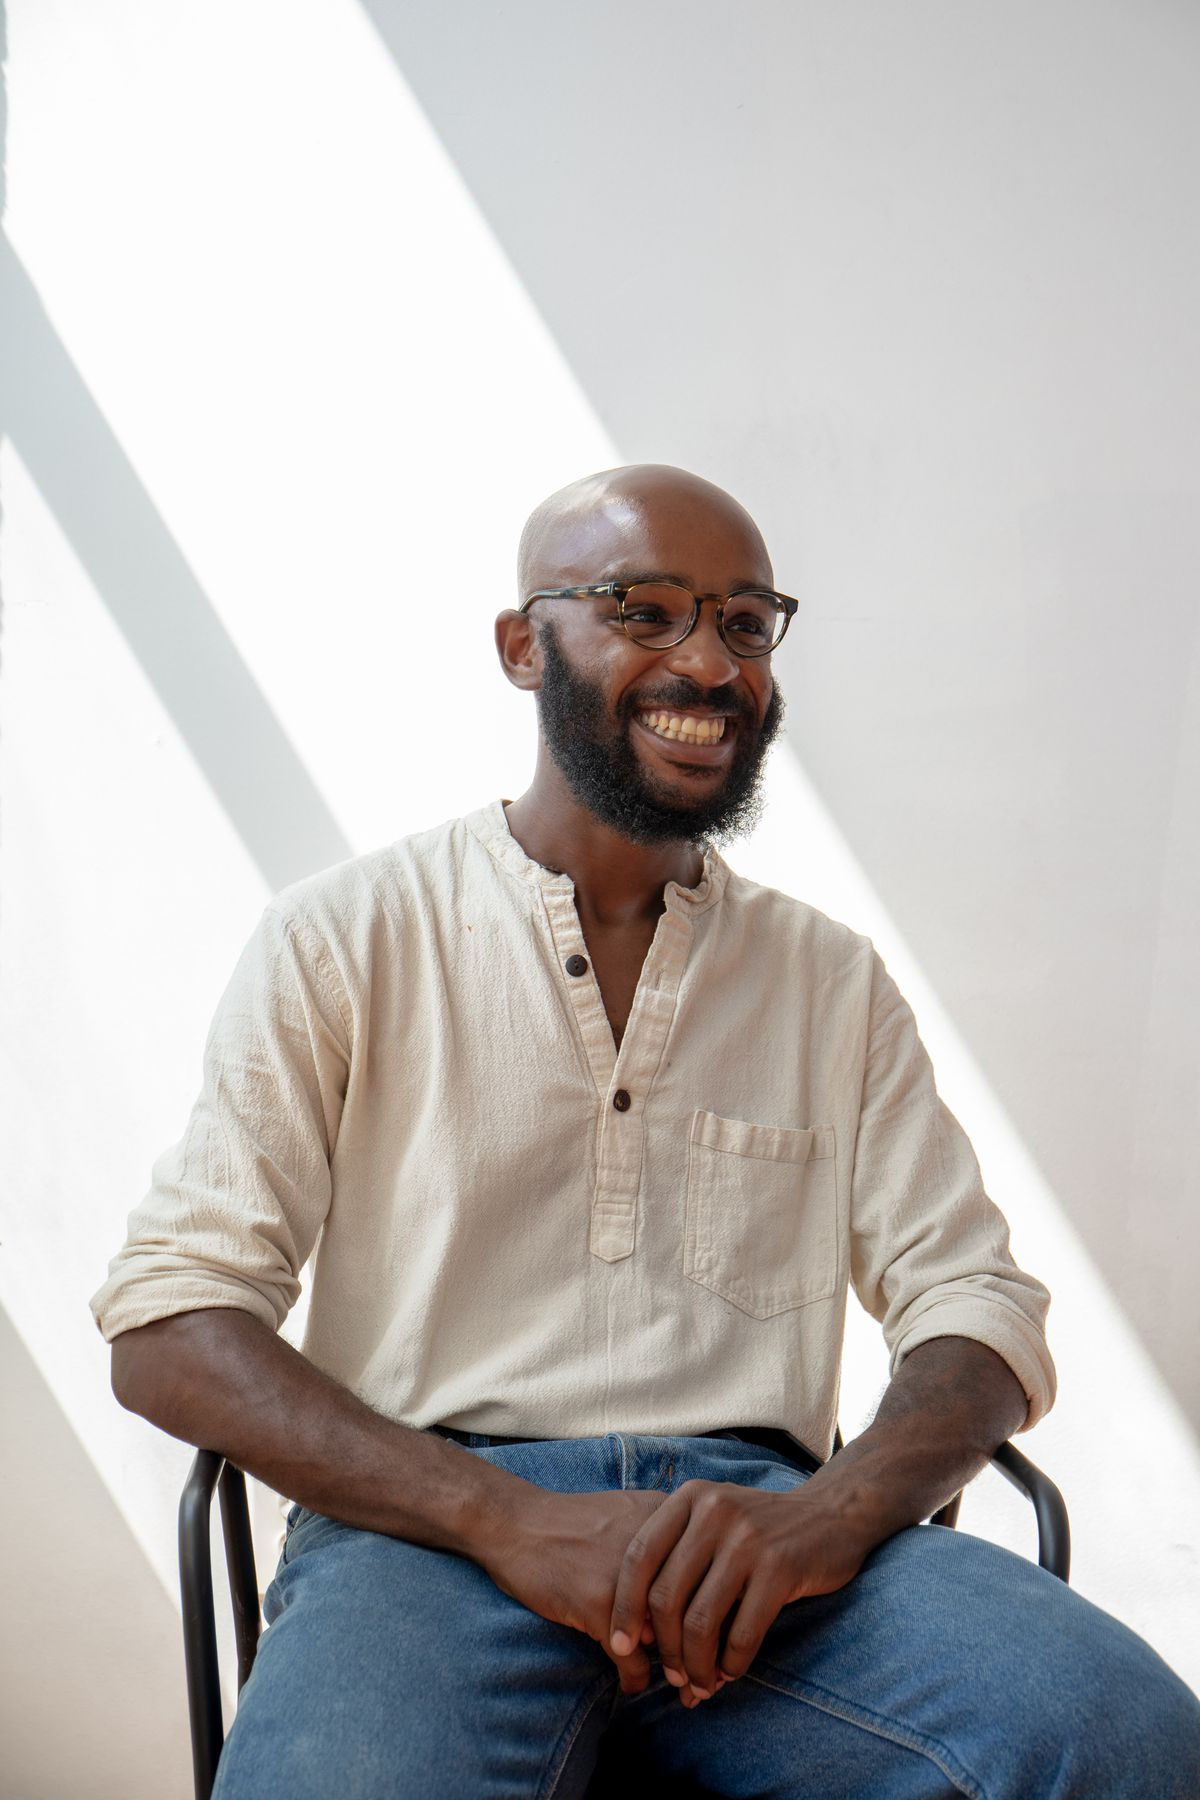 A man in a white shirt and light blue jeans with a bald head and wire-framed glasses